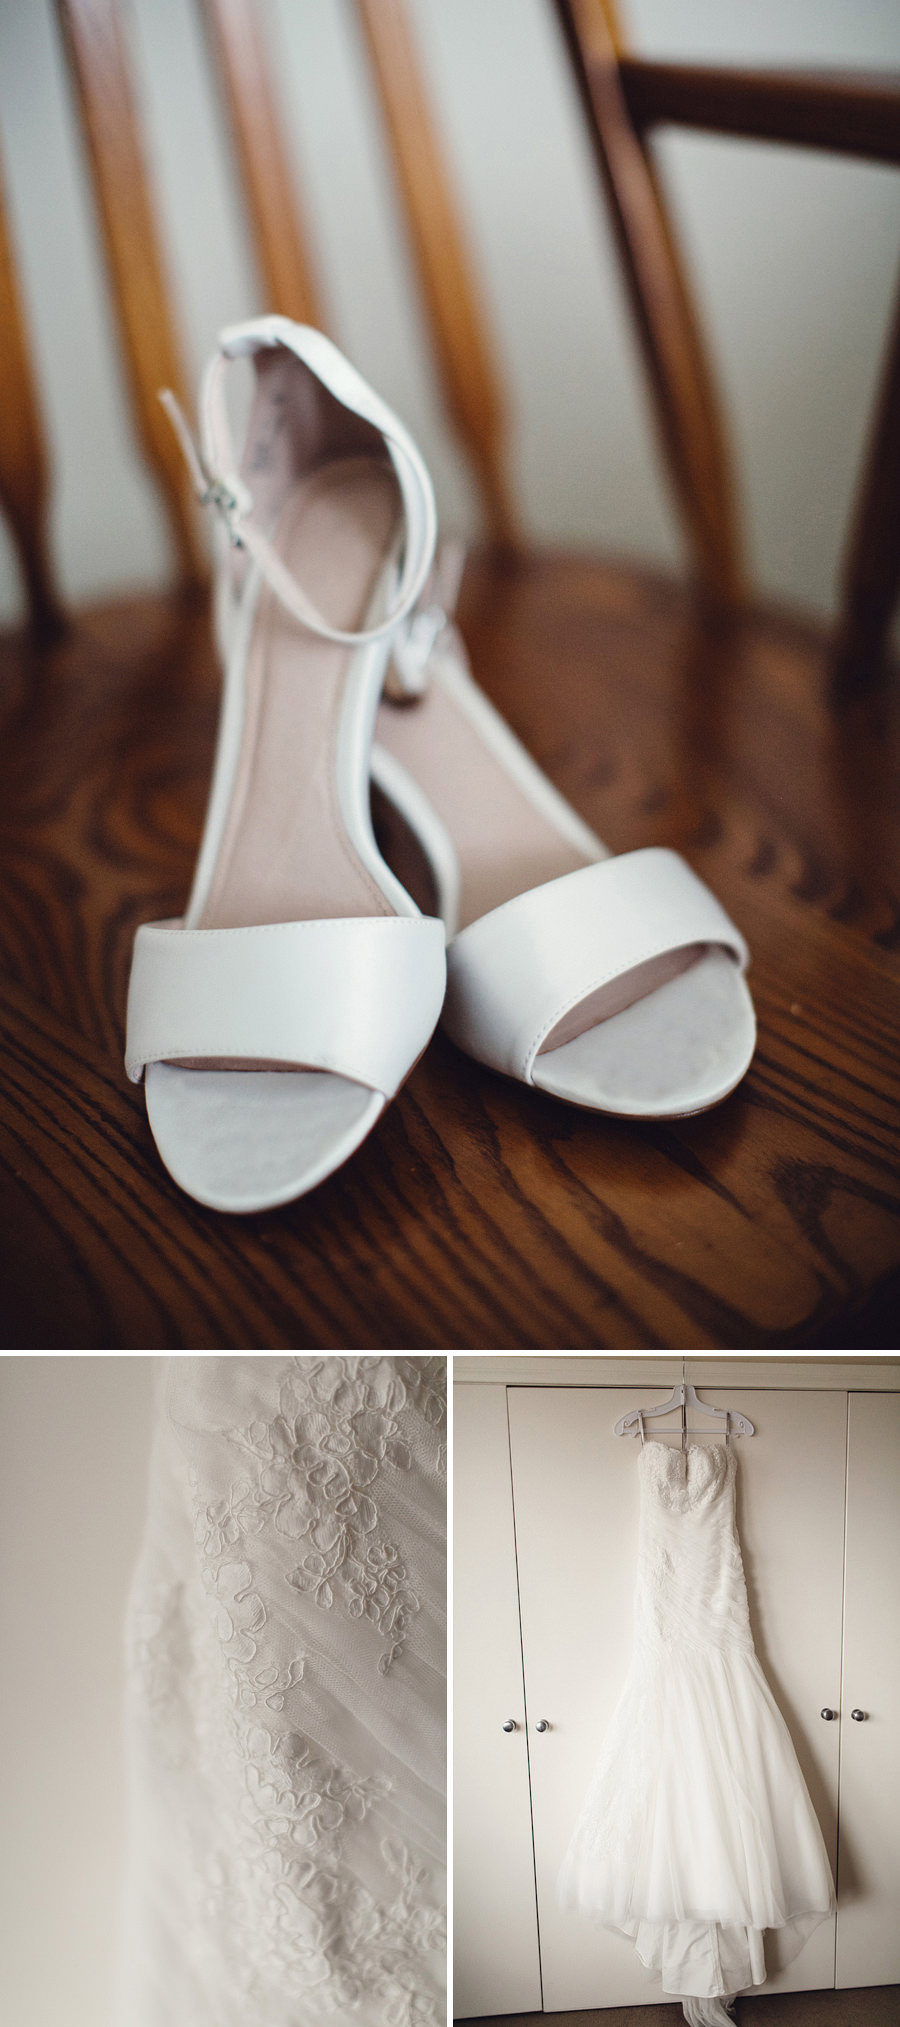 Bondi Junction Wedding Photographers: Bridal details